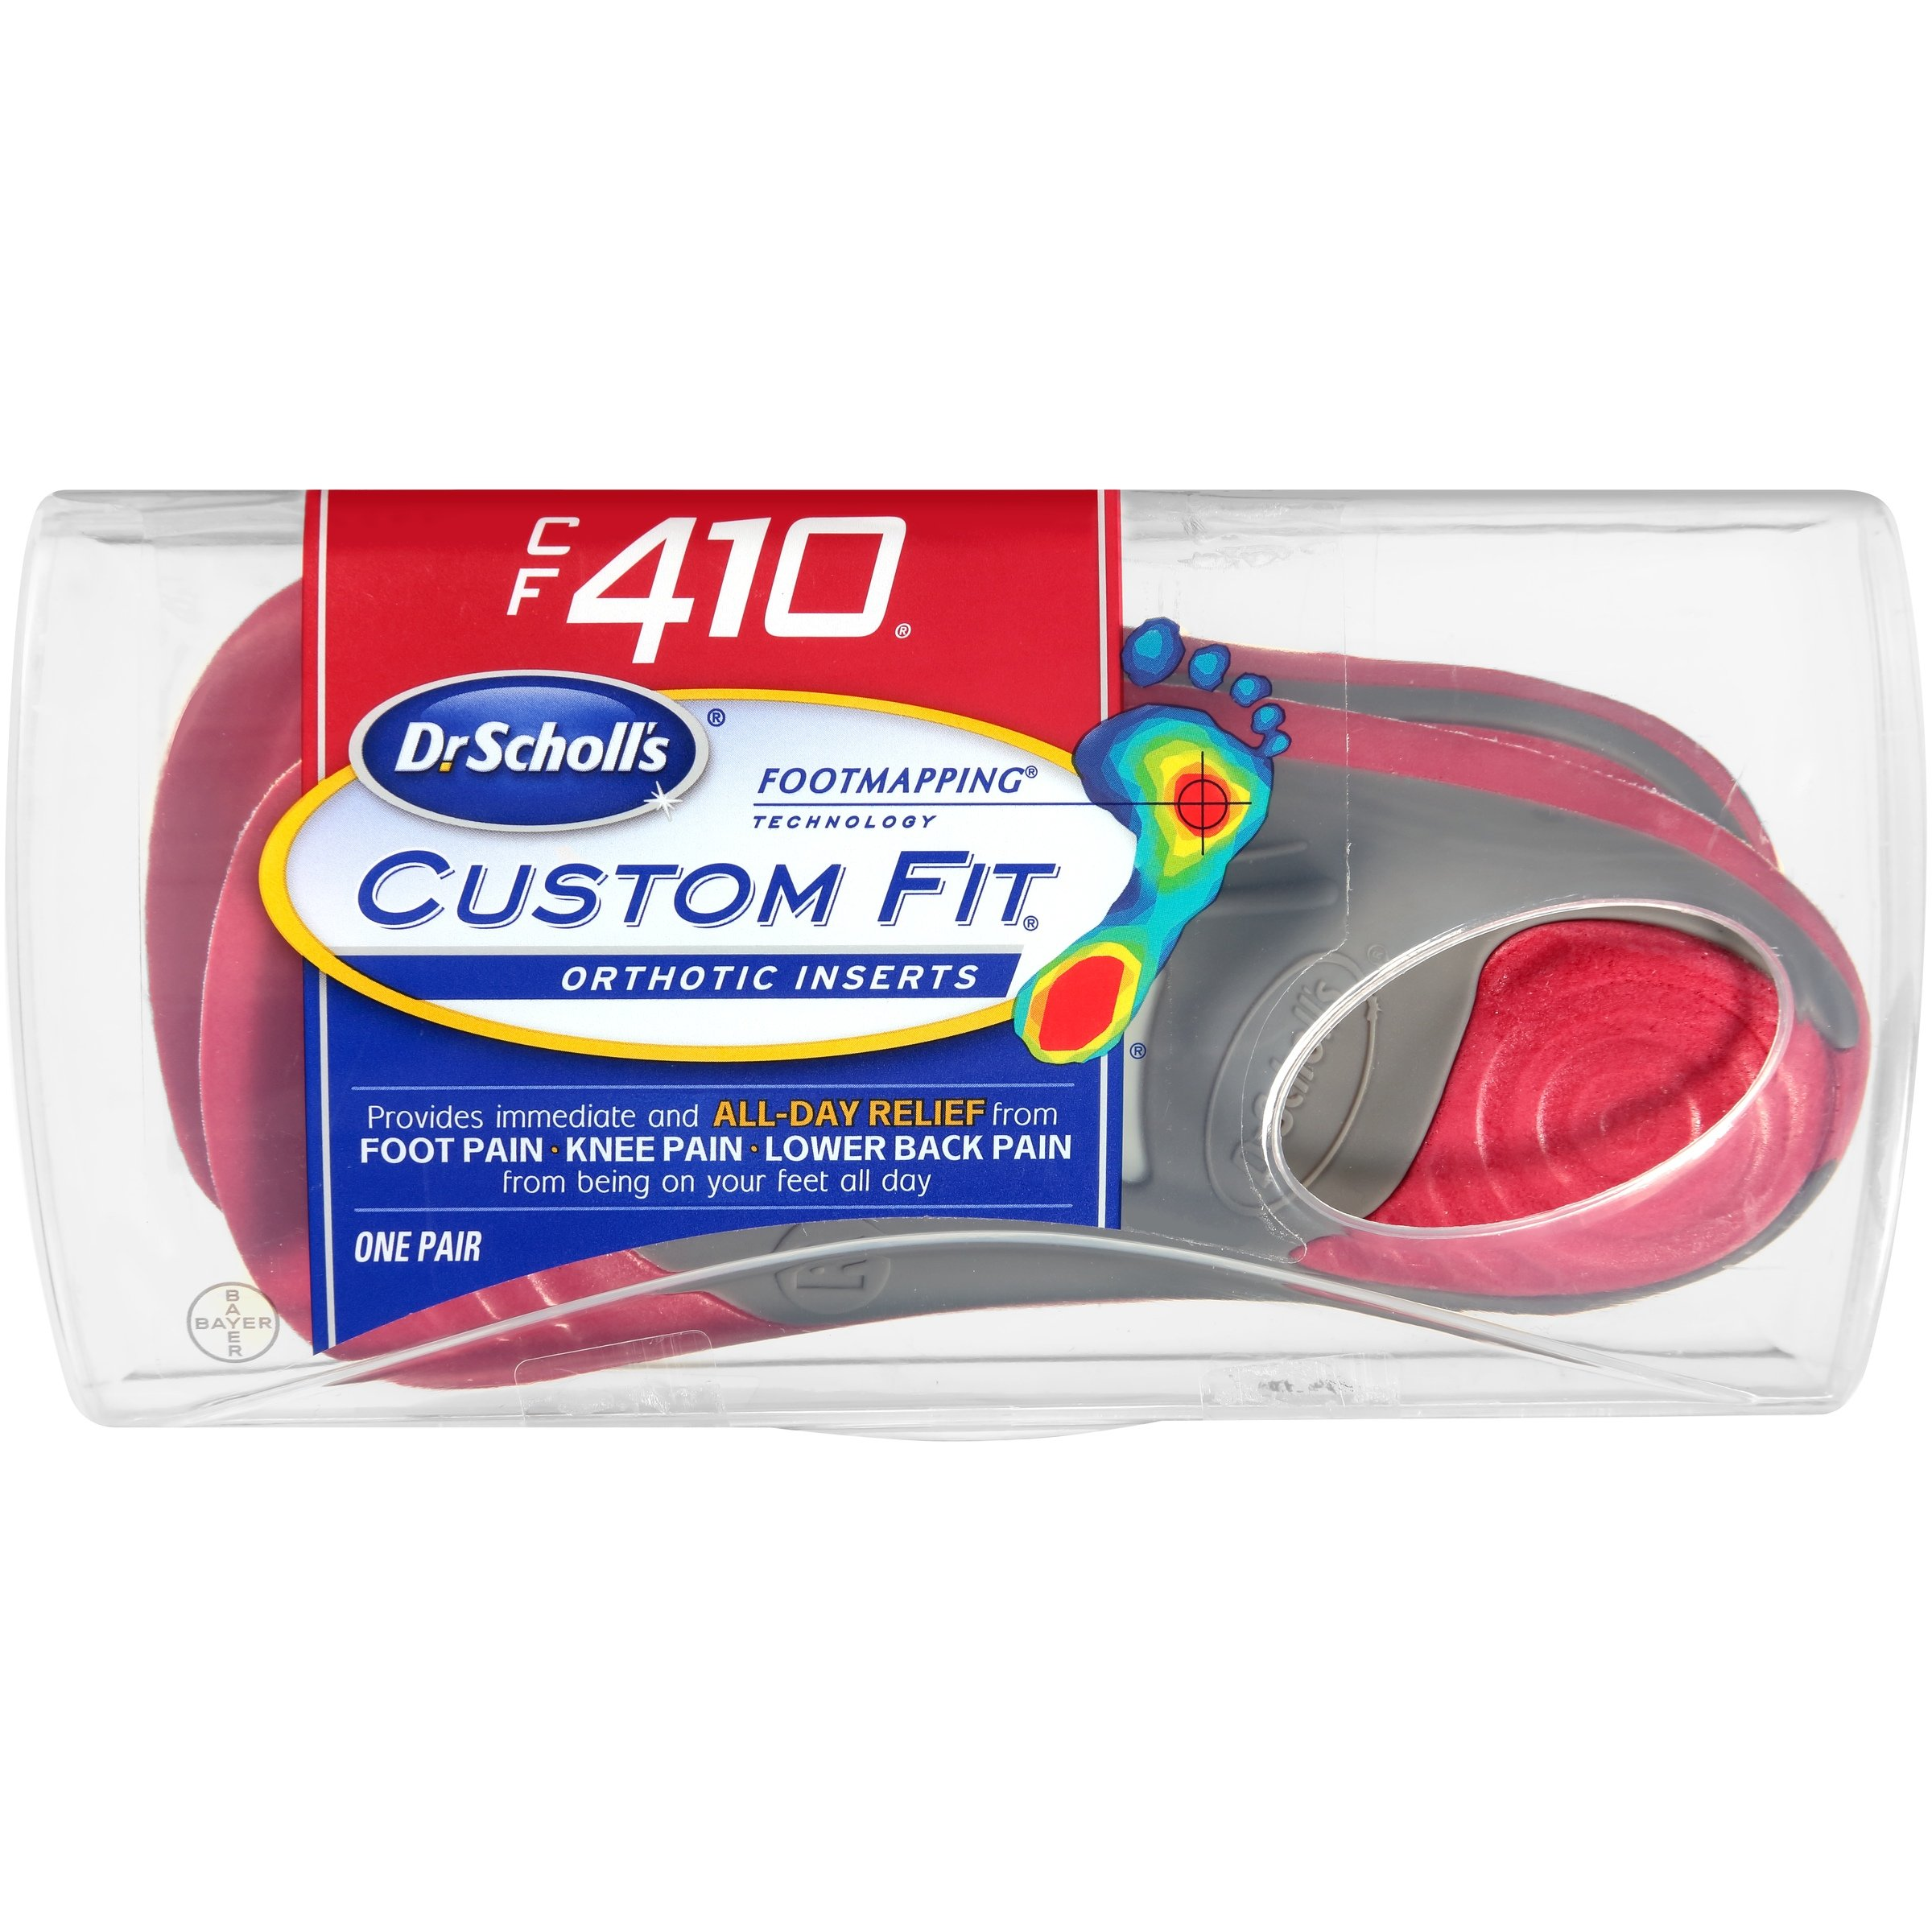 Dr. Scholl's Custom Fit Orthotic Inserts, CF 410